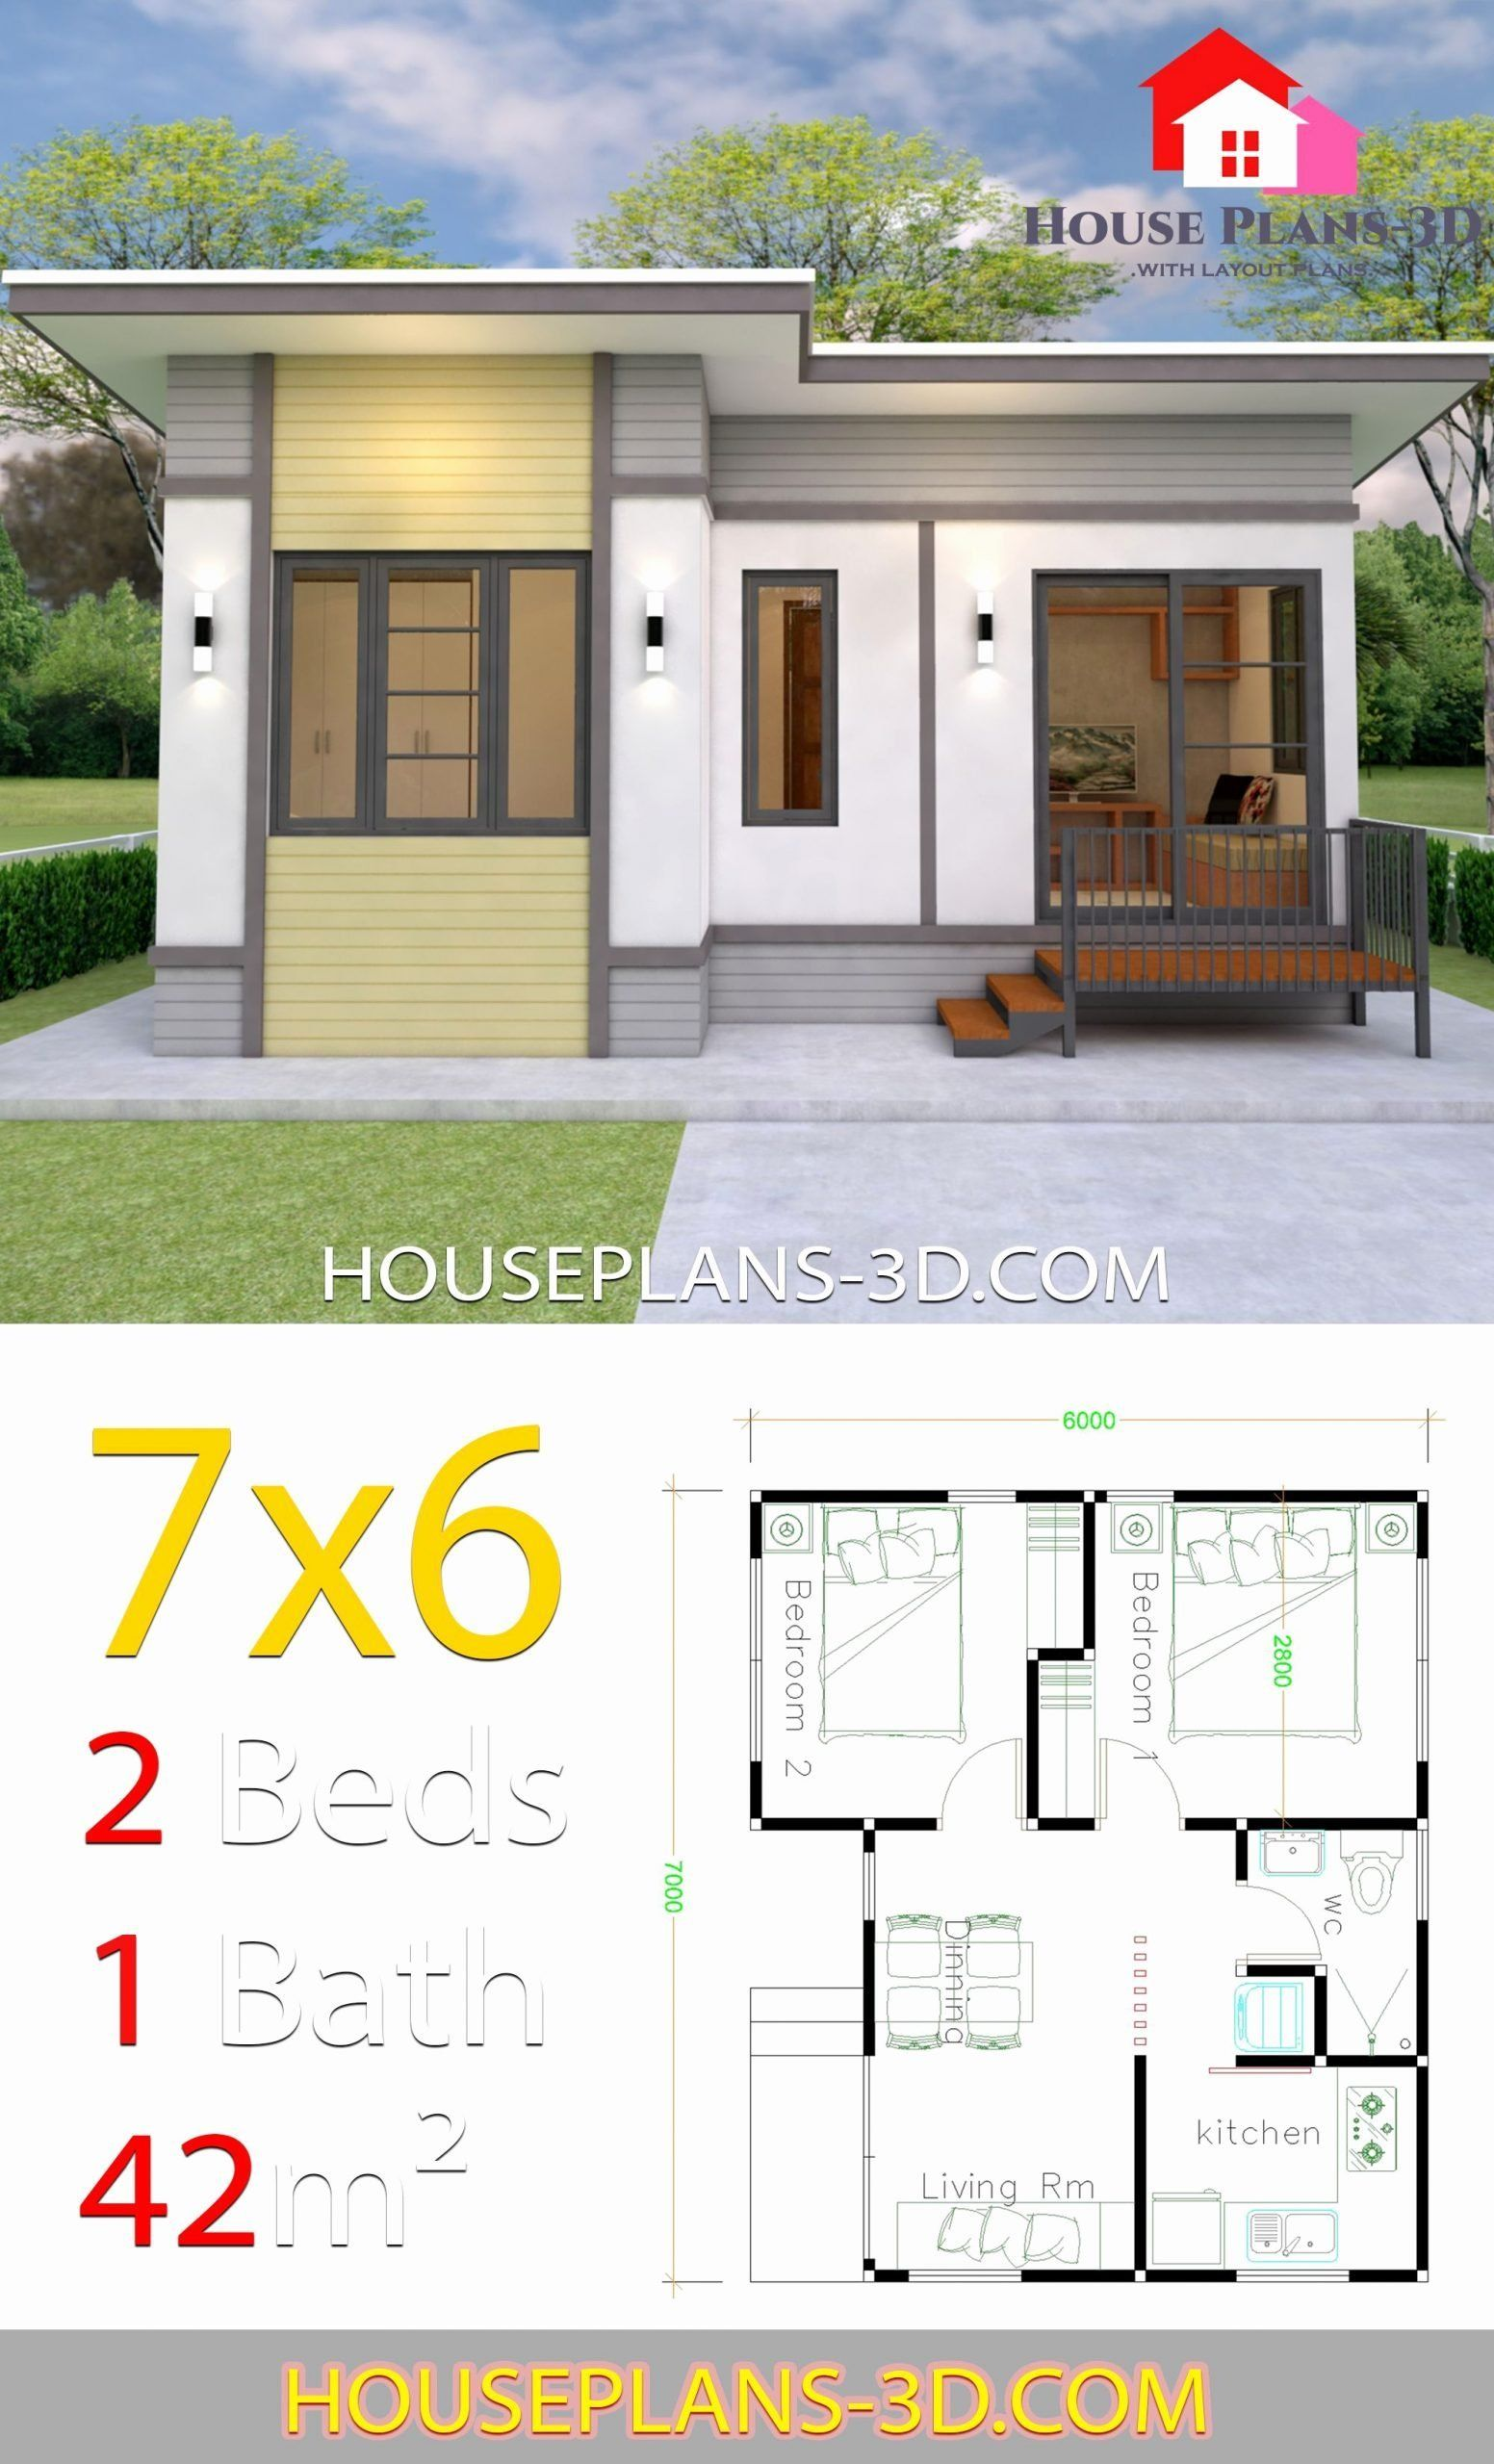 2 Bedroom Home Design Lovely Small House Plans 7x6 With 2 Bedrooms House Plans 3d In Flat Roof House House Plans Simple House Plans